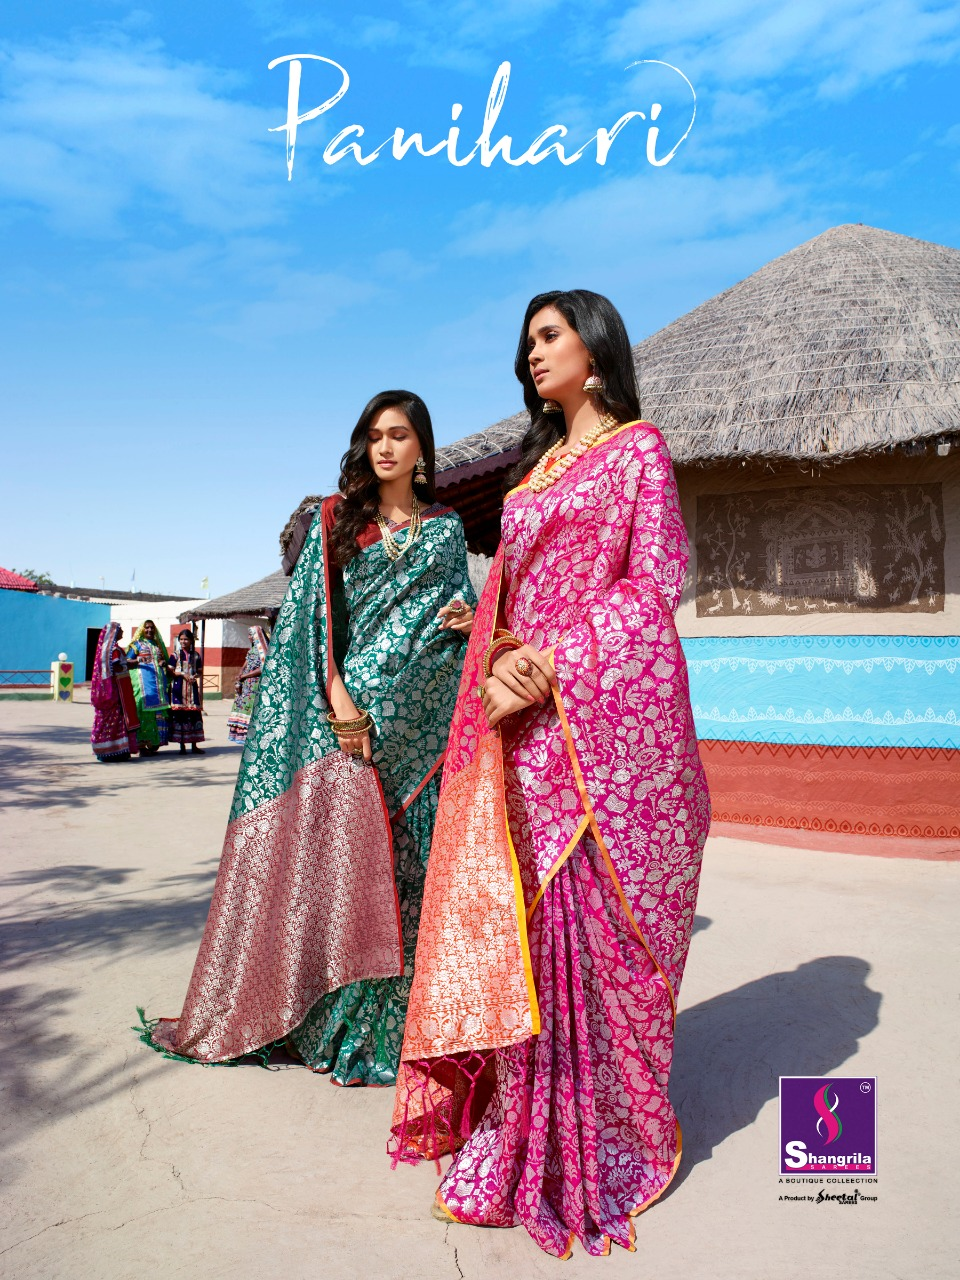 Shangrila Panihri Soft Silky Saree Best Whoesale Rate